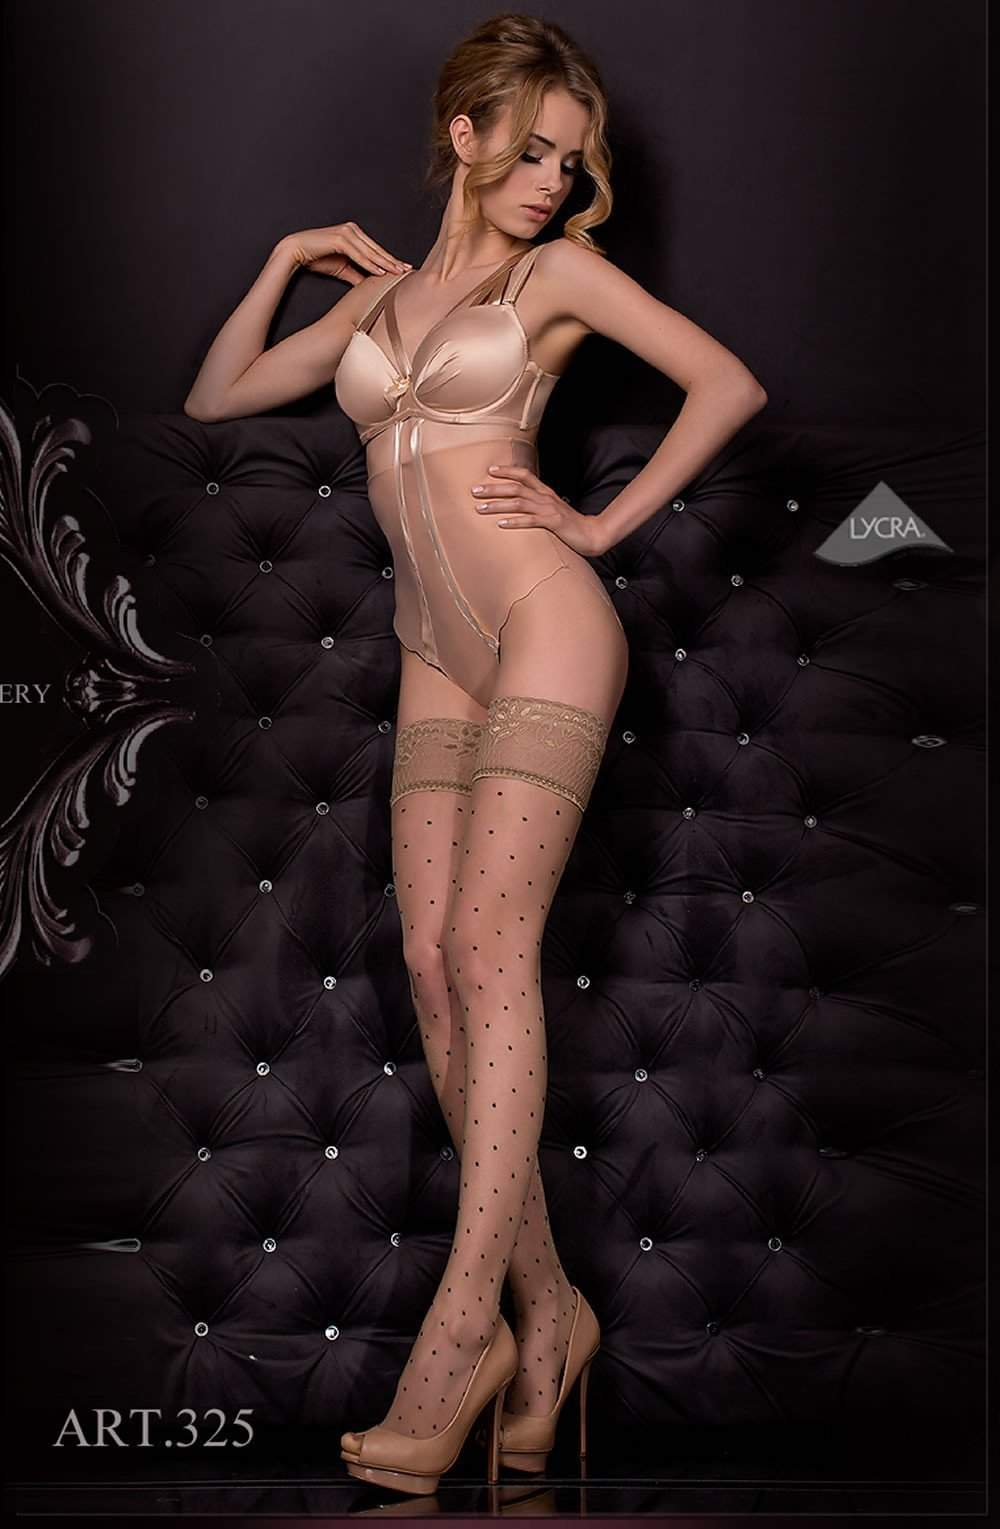 325 Hold Ups in Nero (Black) / Skin by Ballerina - Ballerina - Katys Boutique Lingerie USA